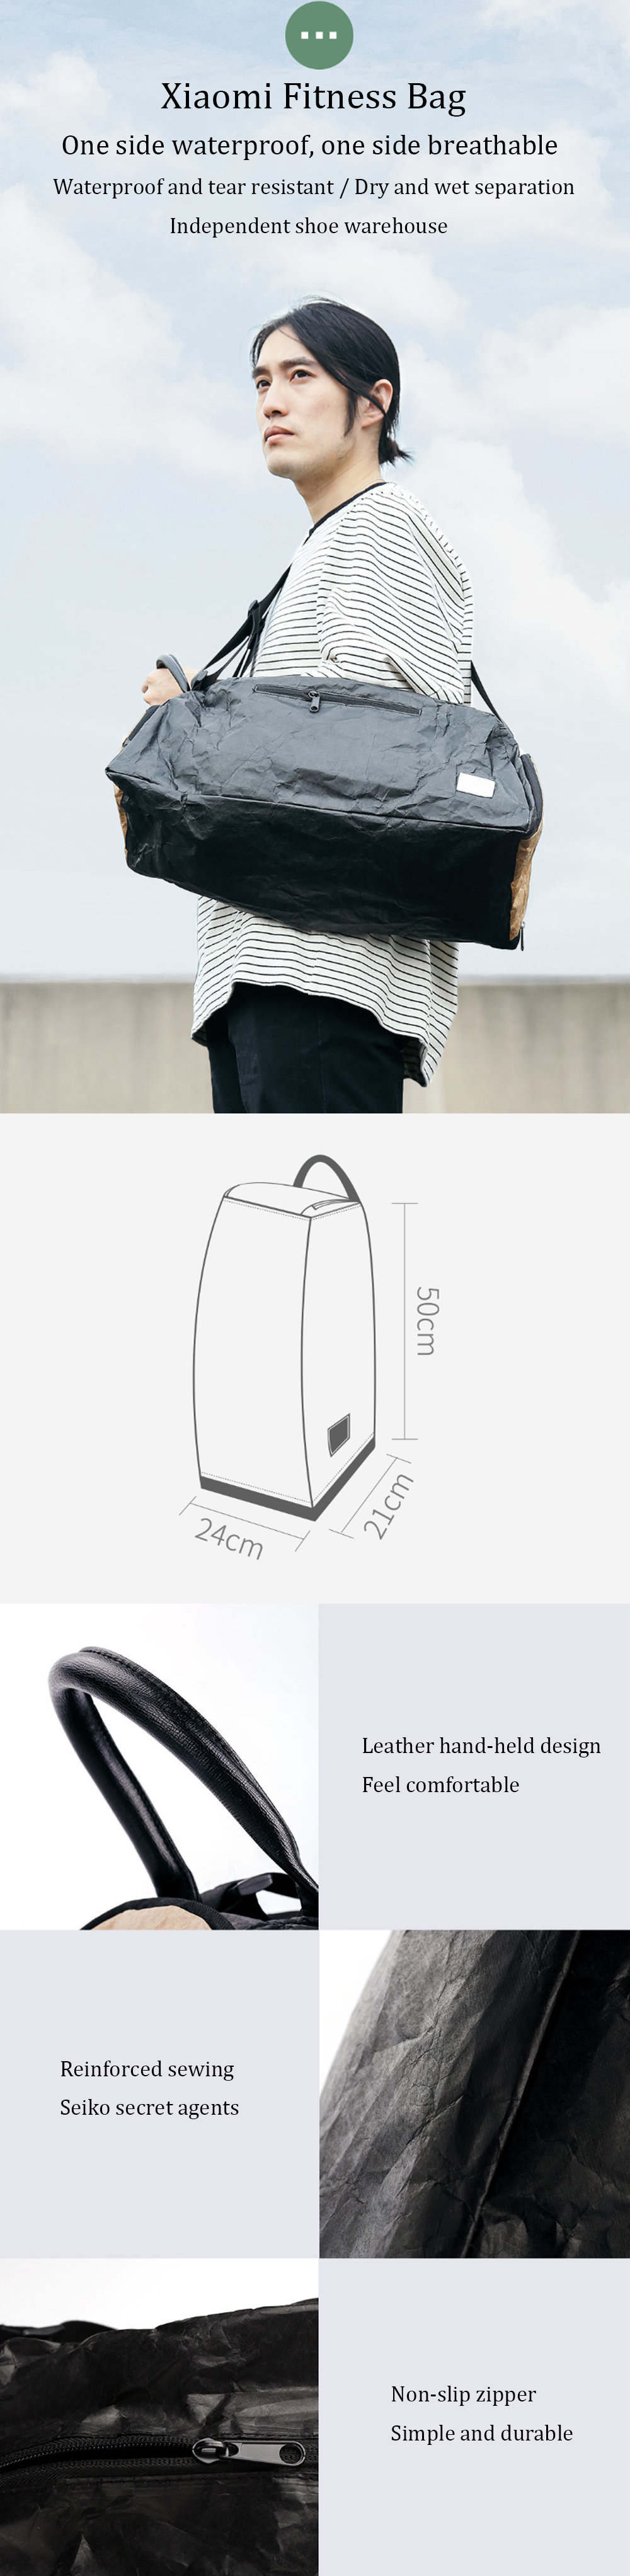 XIAOMI DuPont Paper Fitness Bag Portable Outdoor Sport Backpack Waterproof Fitness Hiking Cycling Shoulder Bag